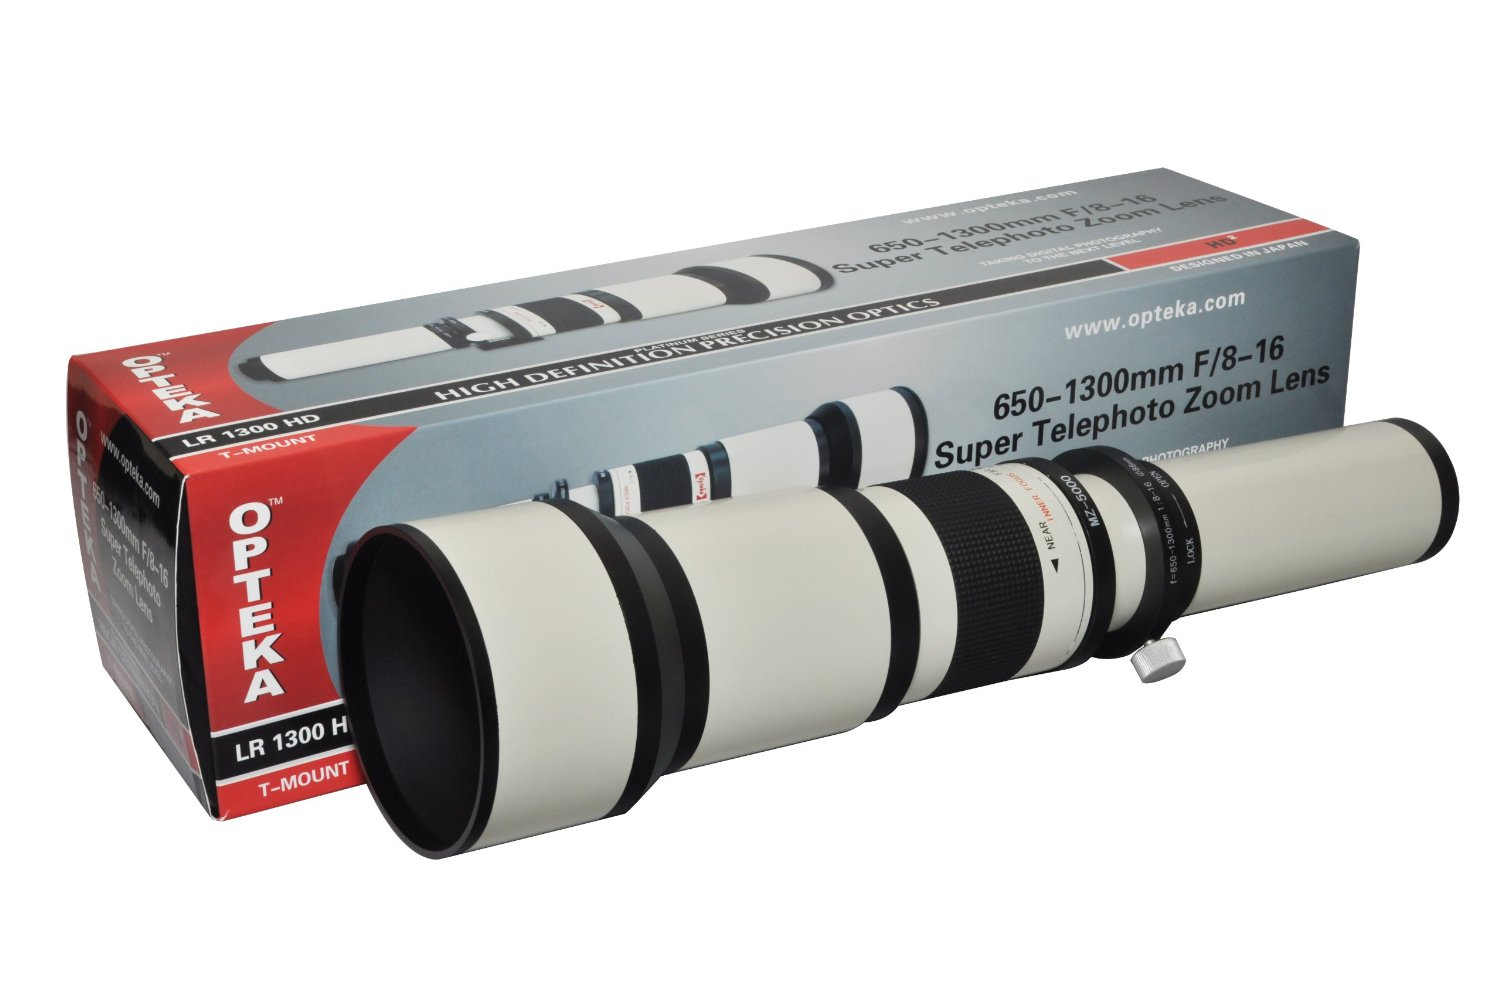 "Opteka 650-2600mm High Definition Telephoto Zoom Lens with 67"" Monopod Kit for Olympus EVOLT E-5, E-520, E-510, E-500, E-450, E-420, E-410, E-400, E-330 and E-300 Digital SLR Cameras"